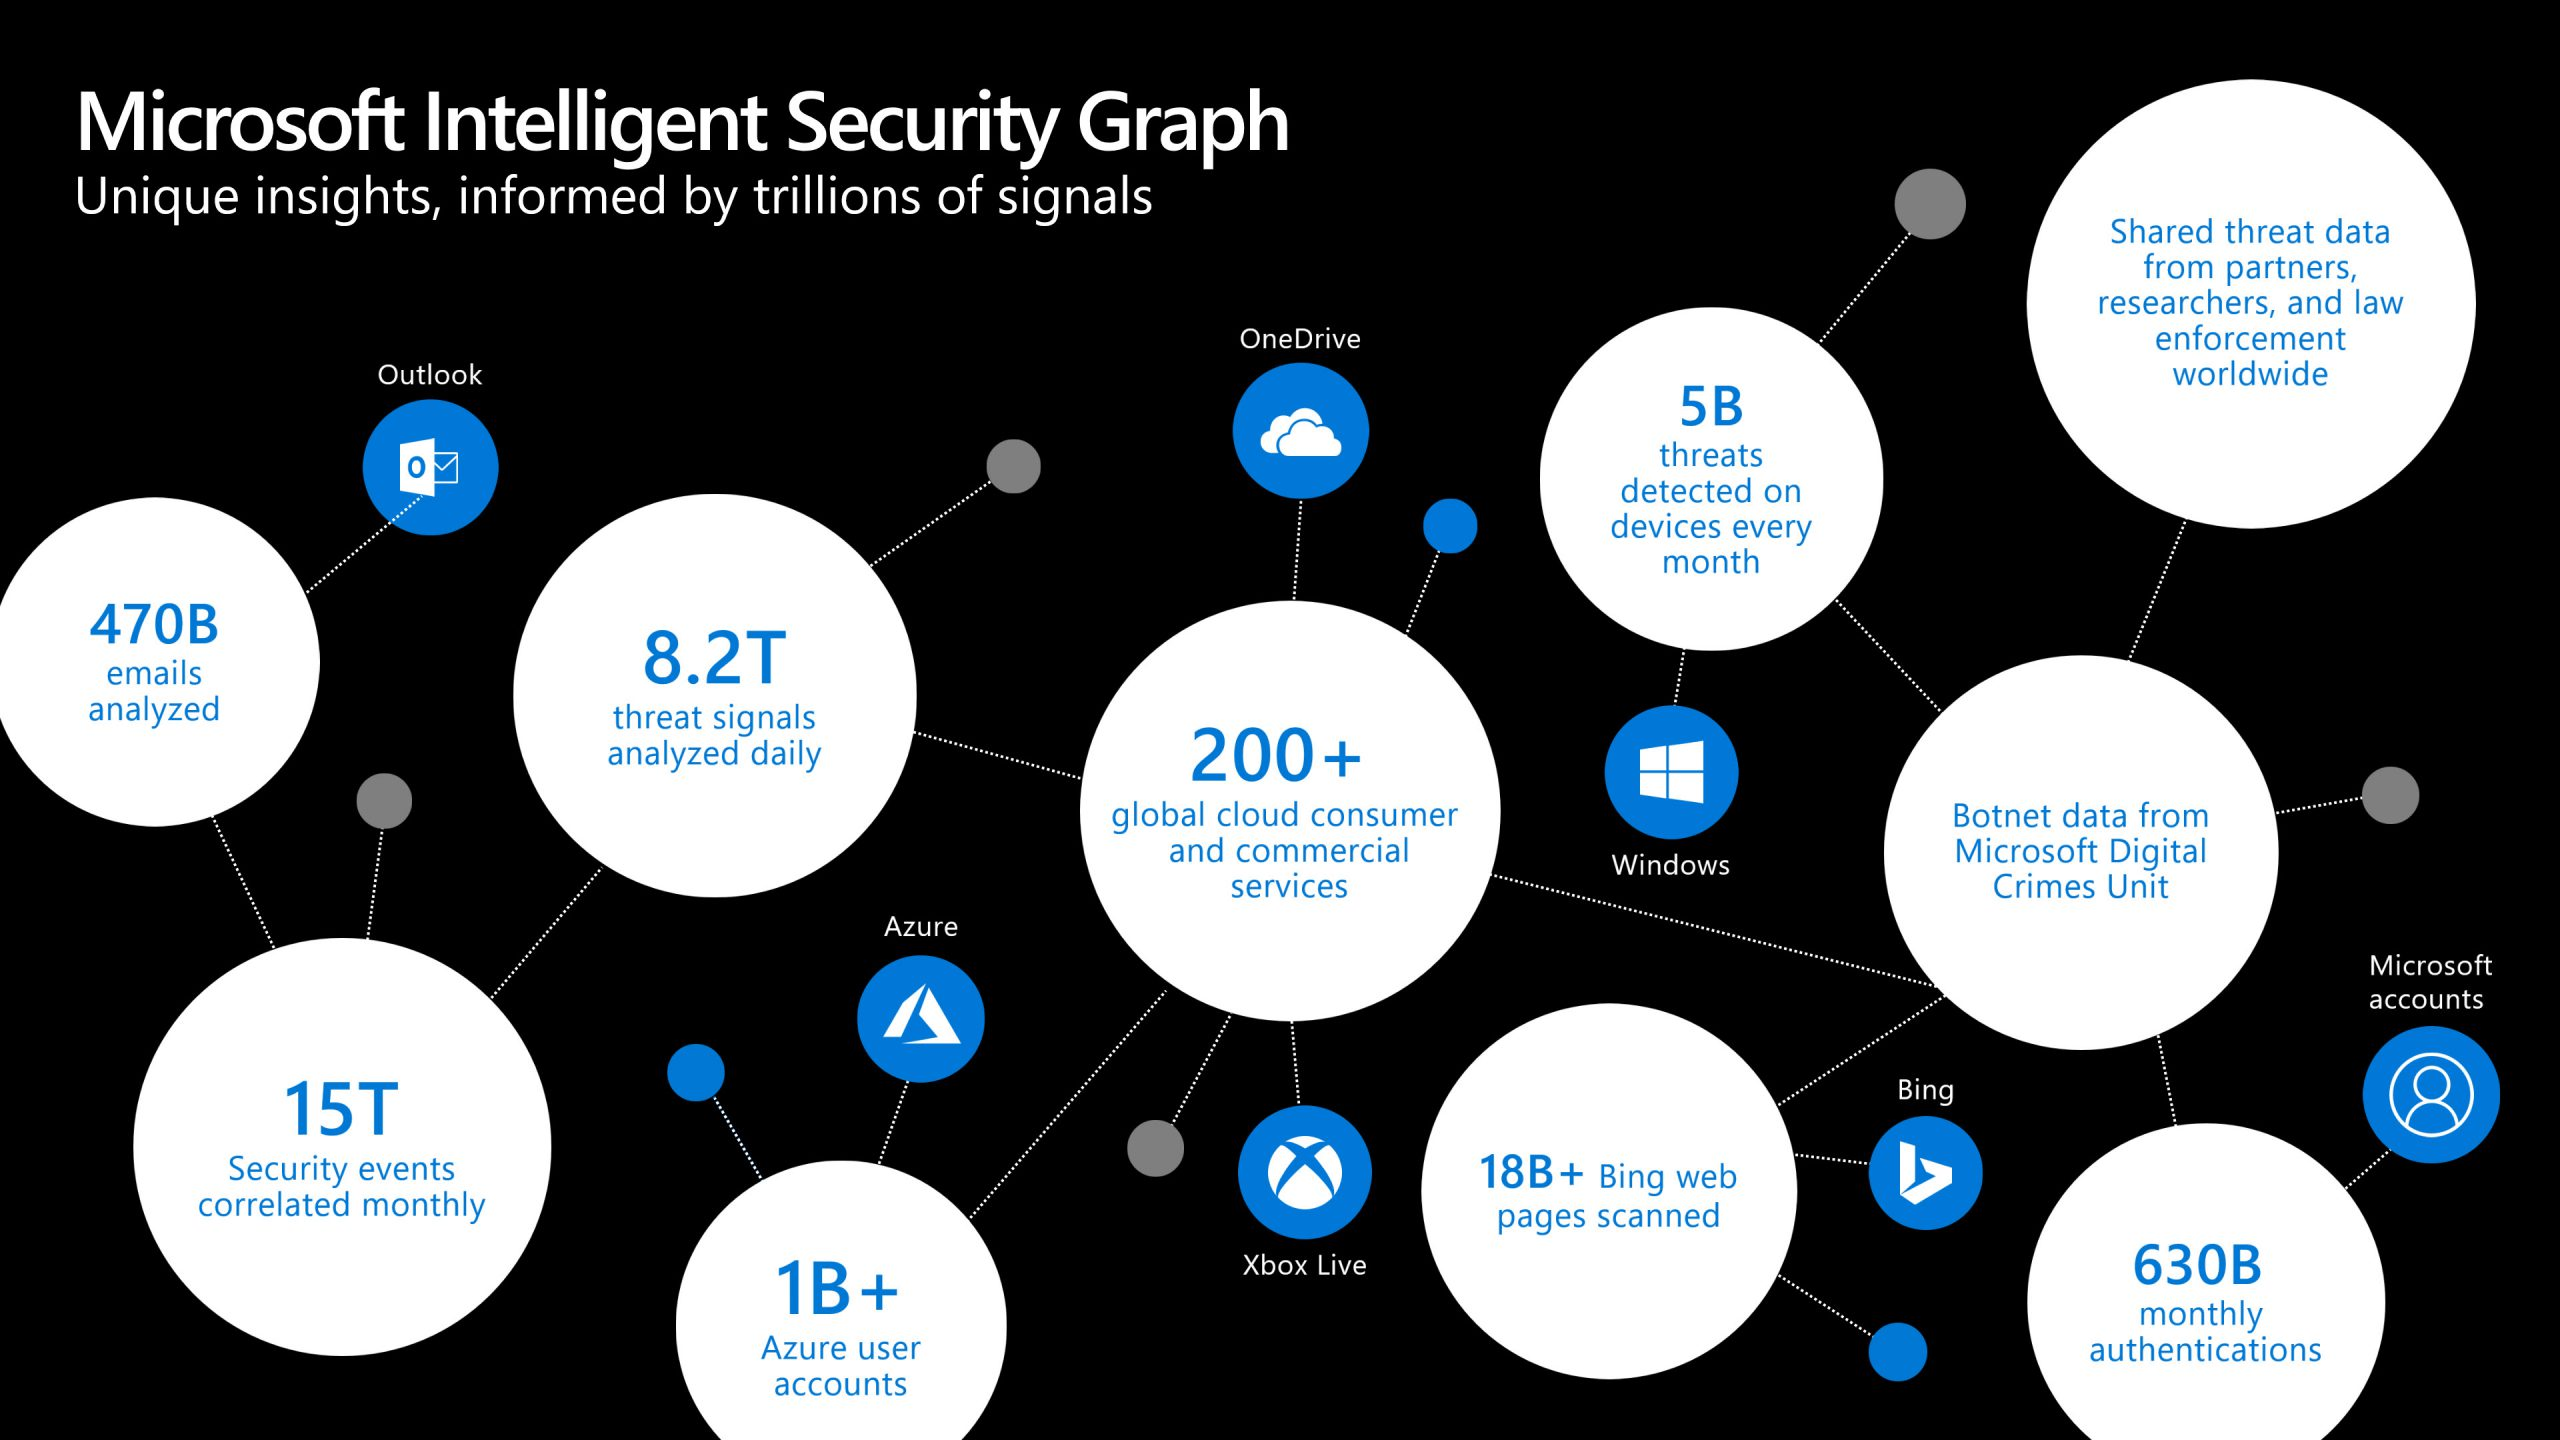 Microsoft Intelligent Security Graph